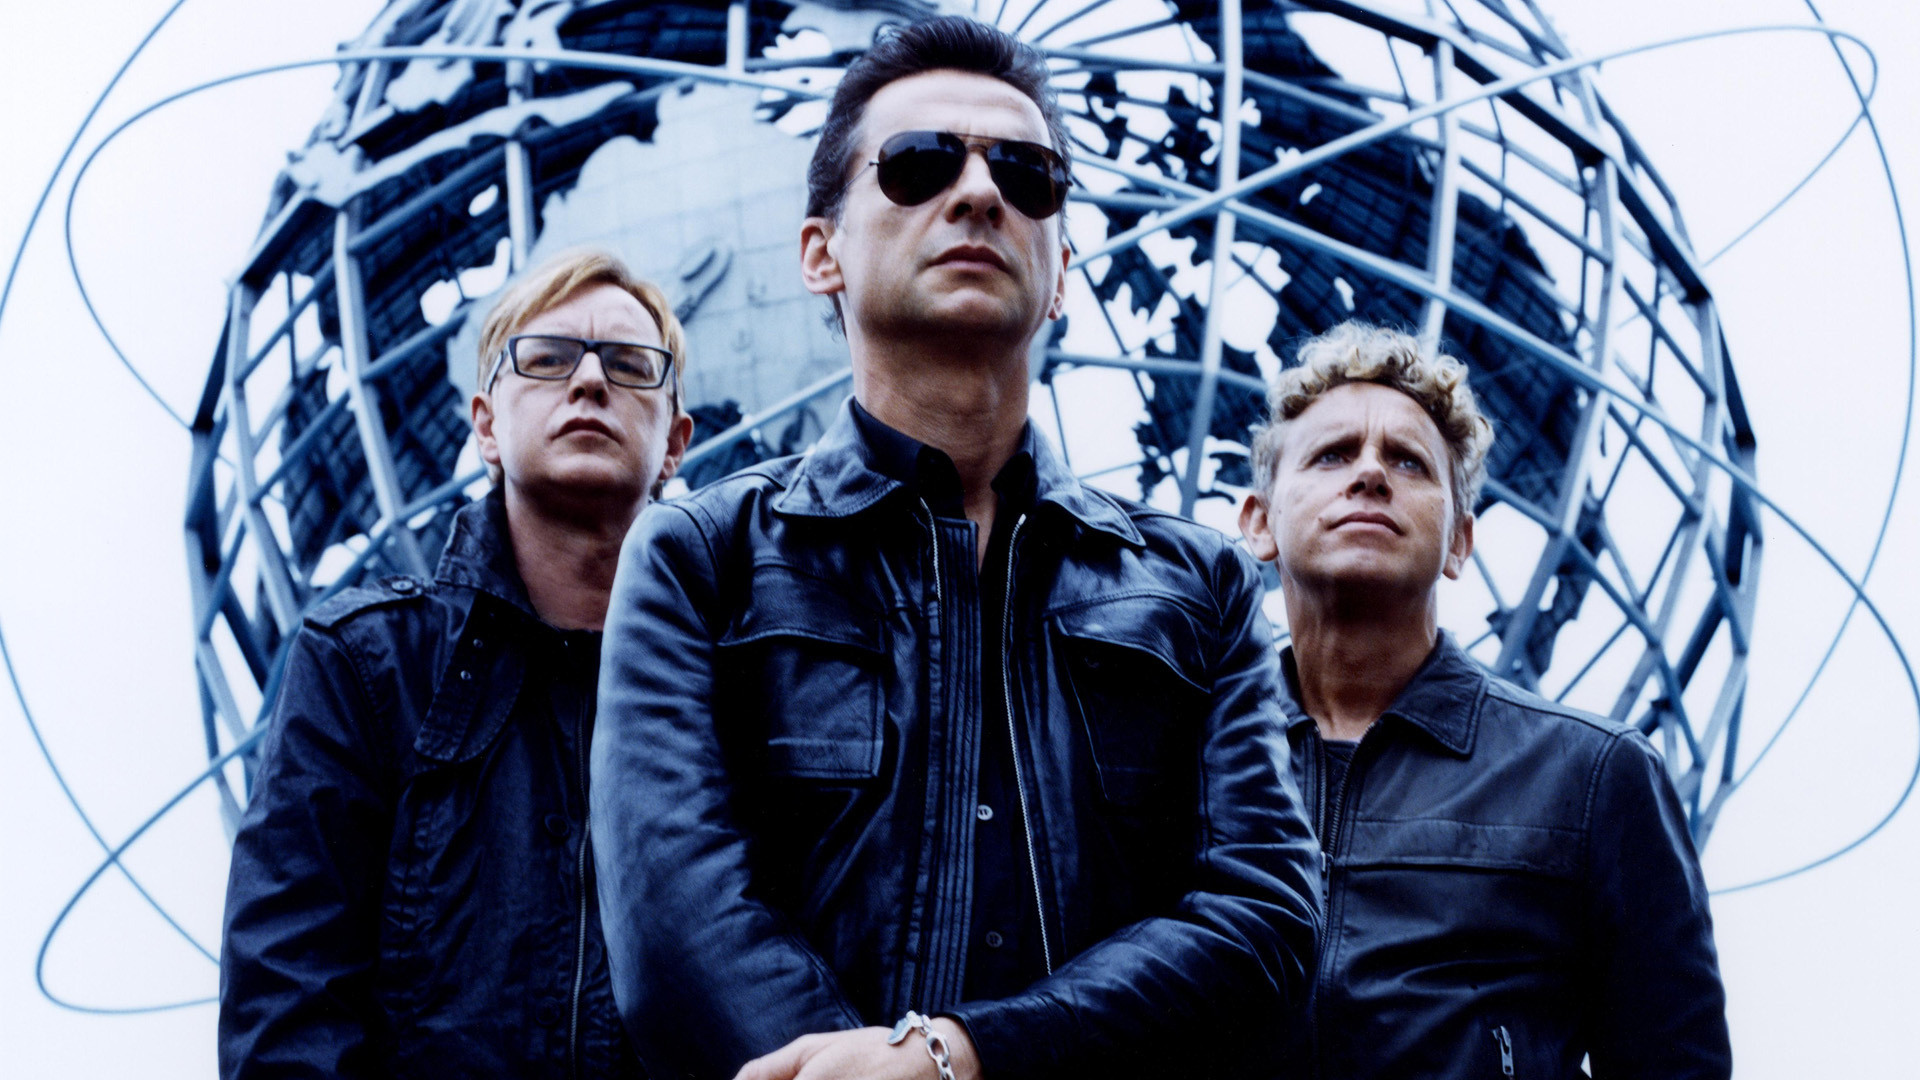 1920x1080 Depeche Mode Wallpaper